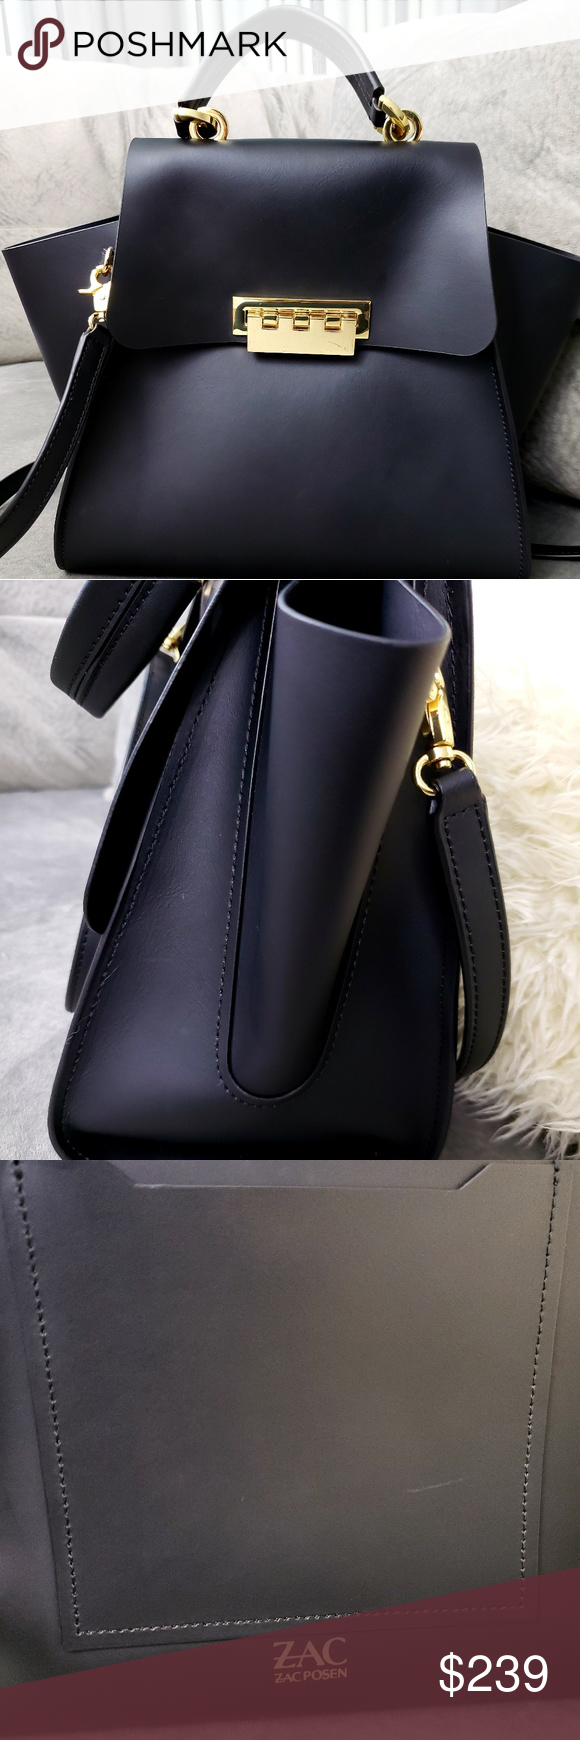 Zac Posen Black Eartha Bag Iconic Zac Posen Eartha Bag